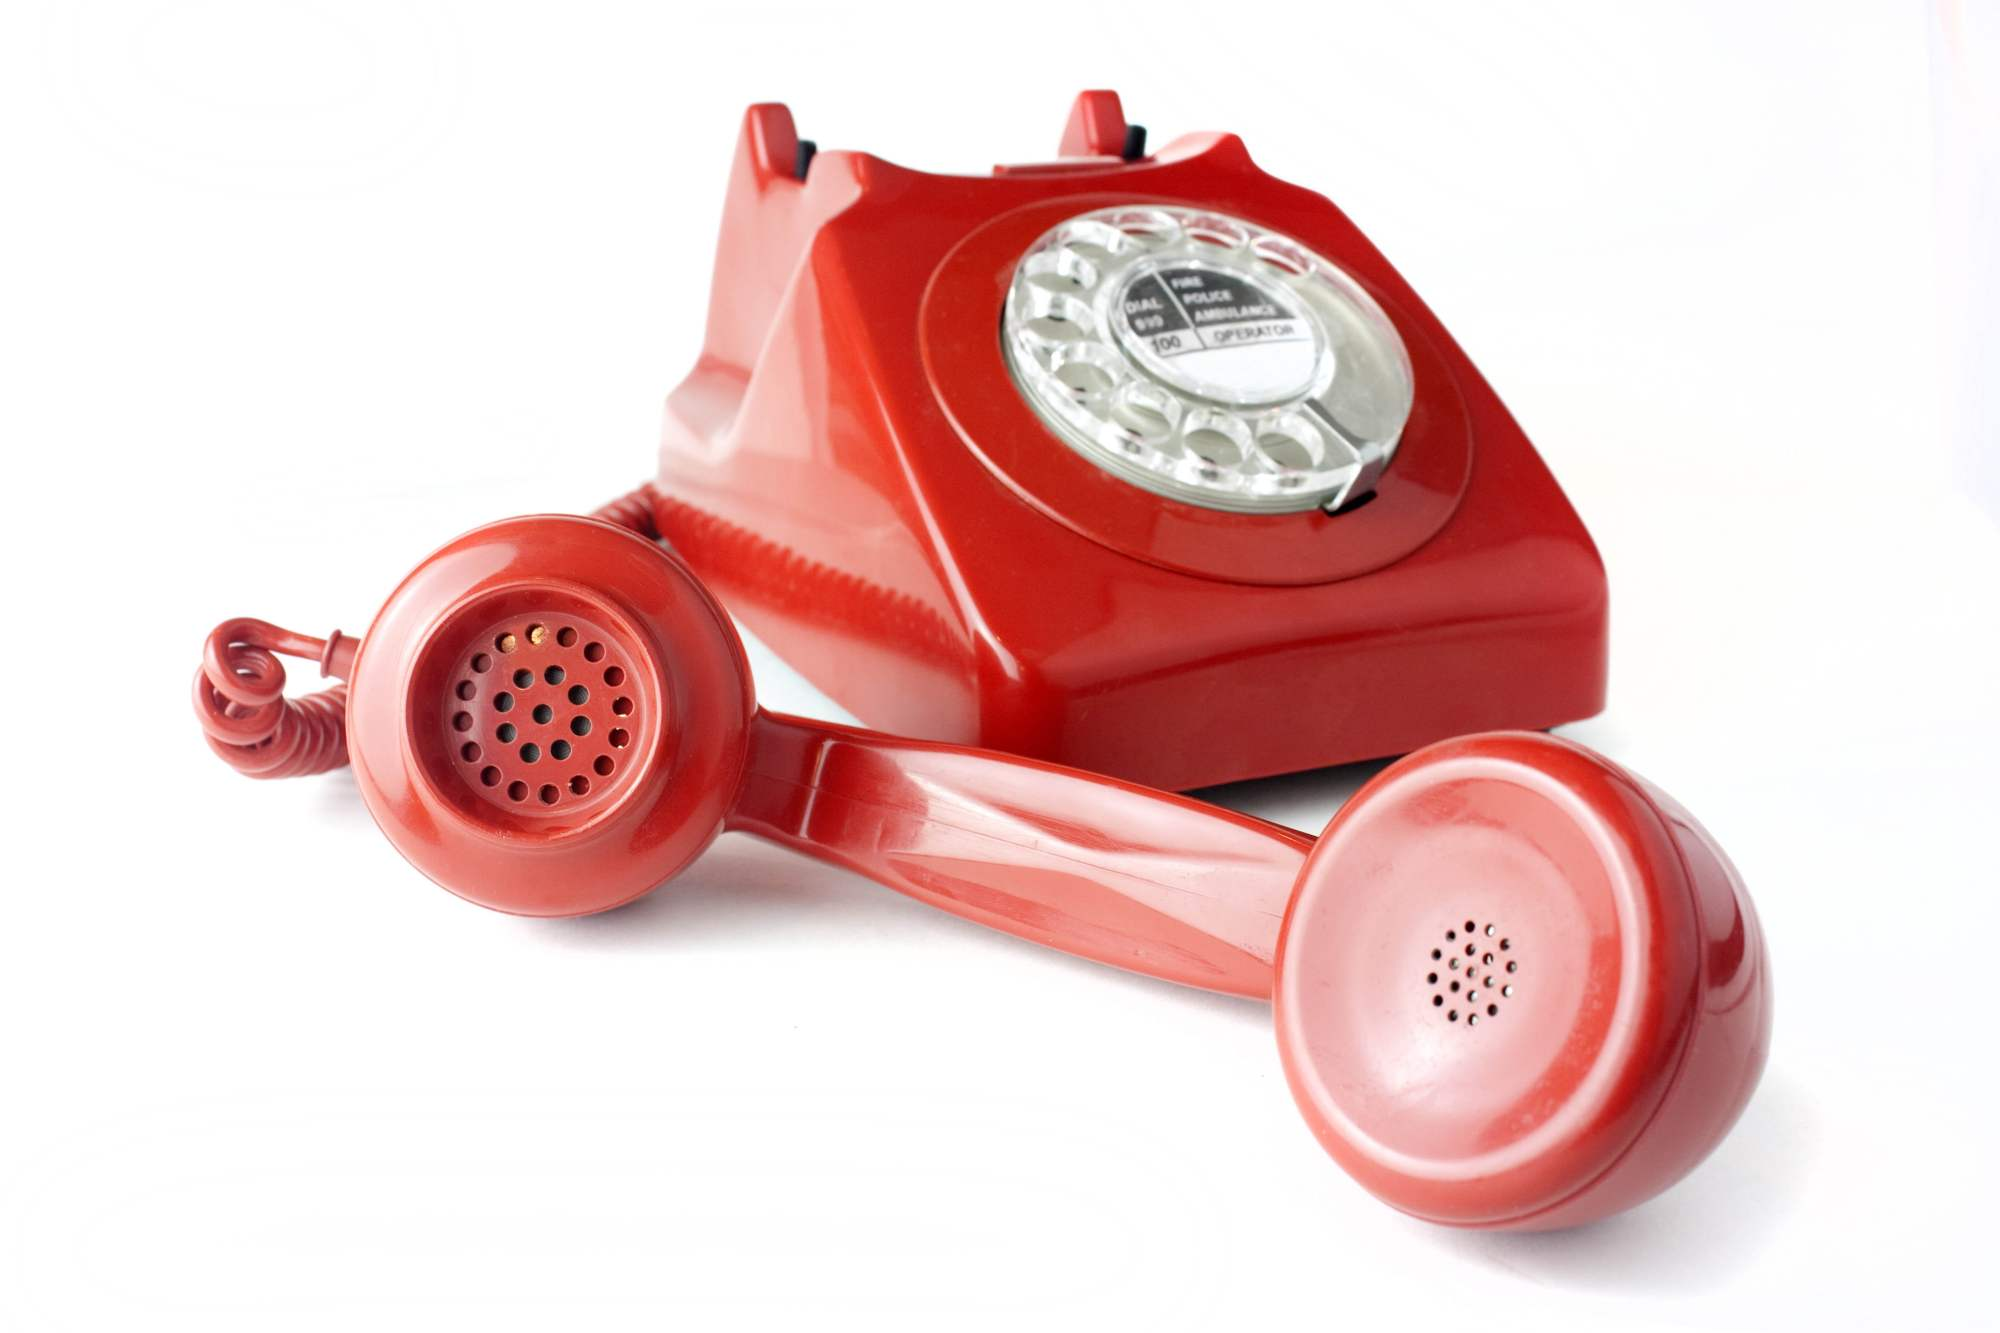 hight resolution of red rotary telephone hd wallpaper